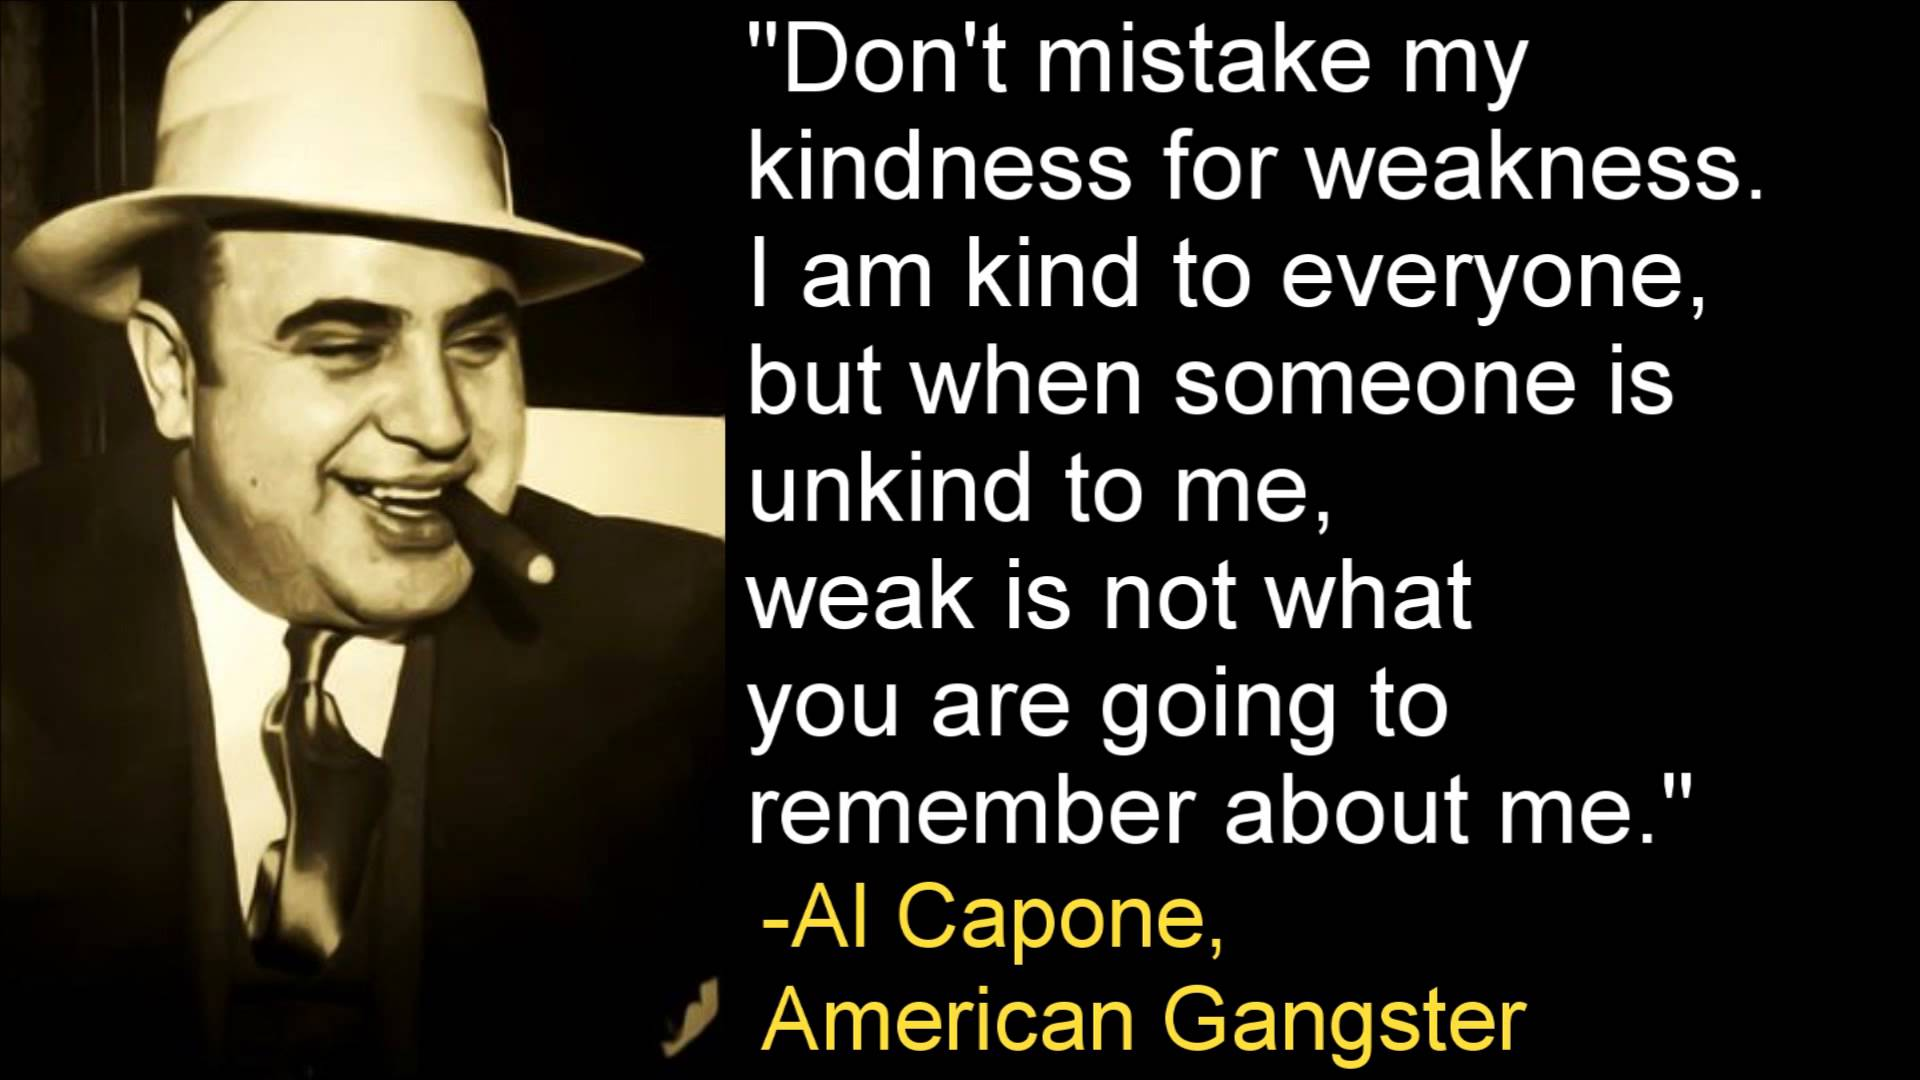 essay on al capone Free essay: al capone's rise to success is similar to a large amount of modern america's success stories, those who have succeeded through their positive.